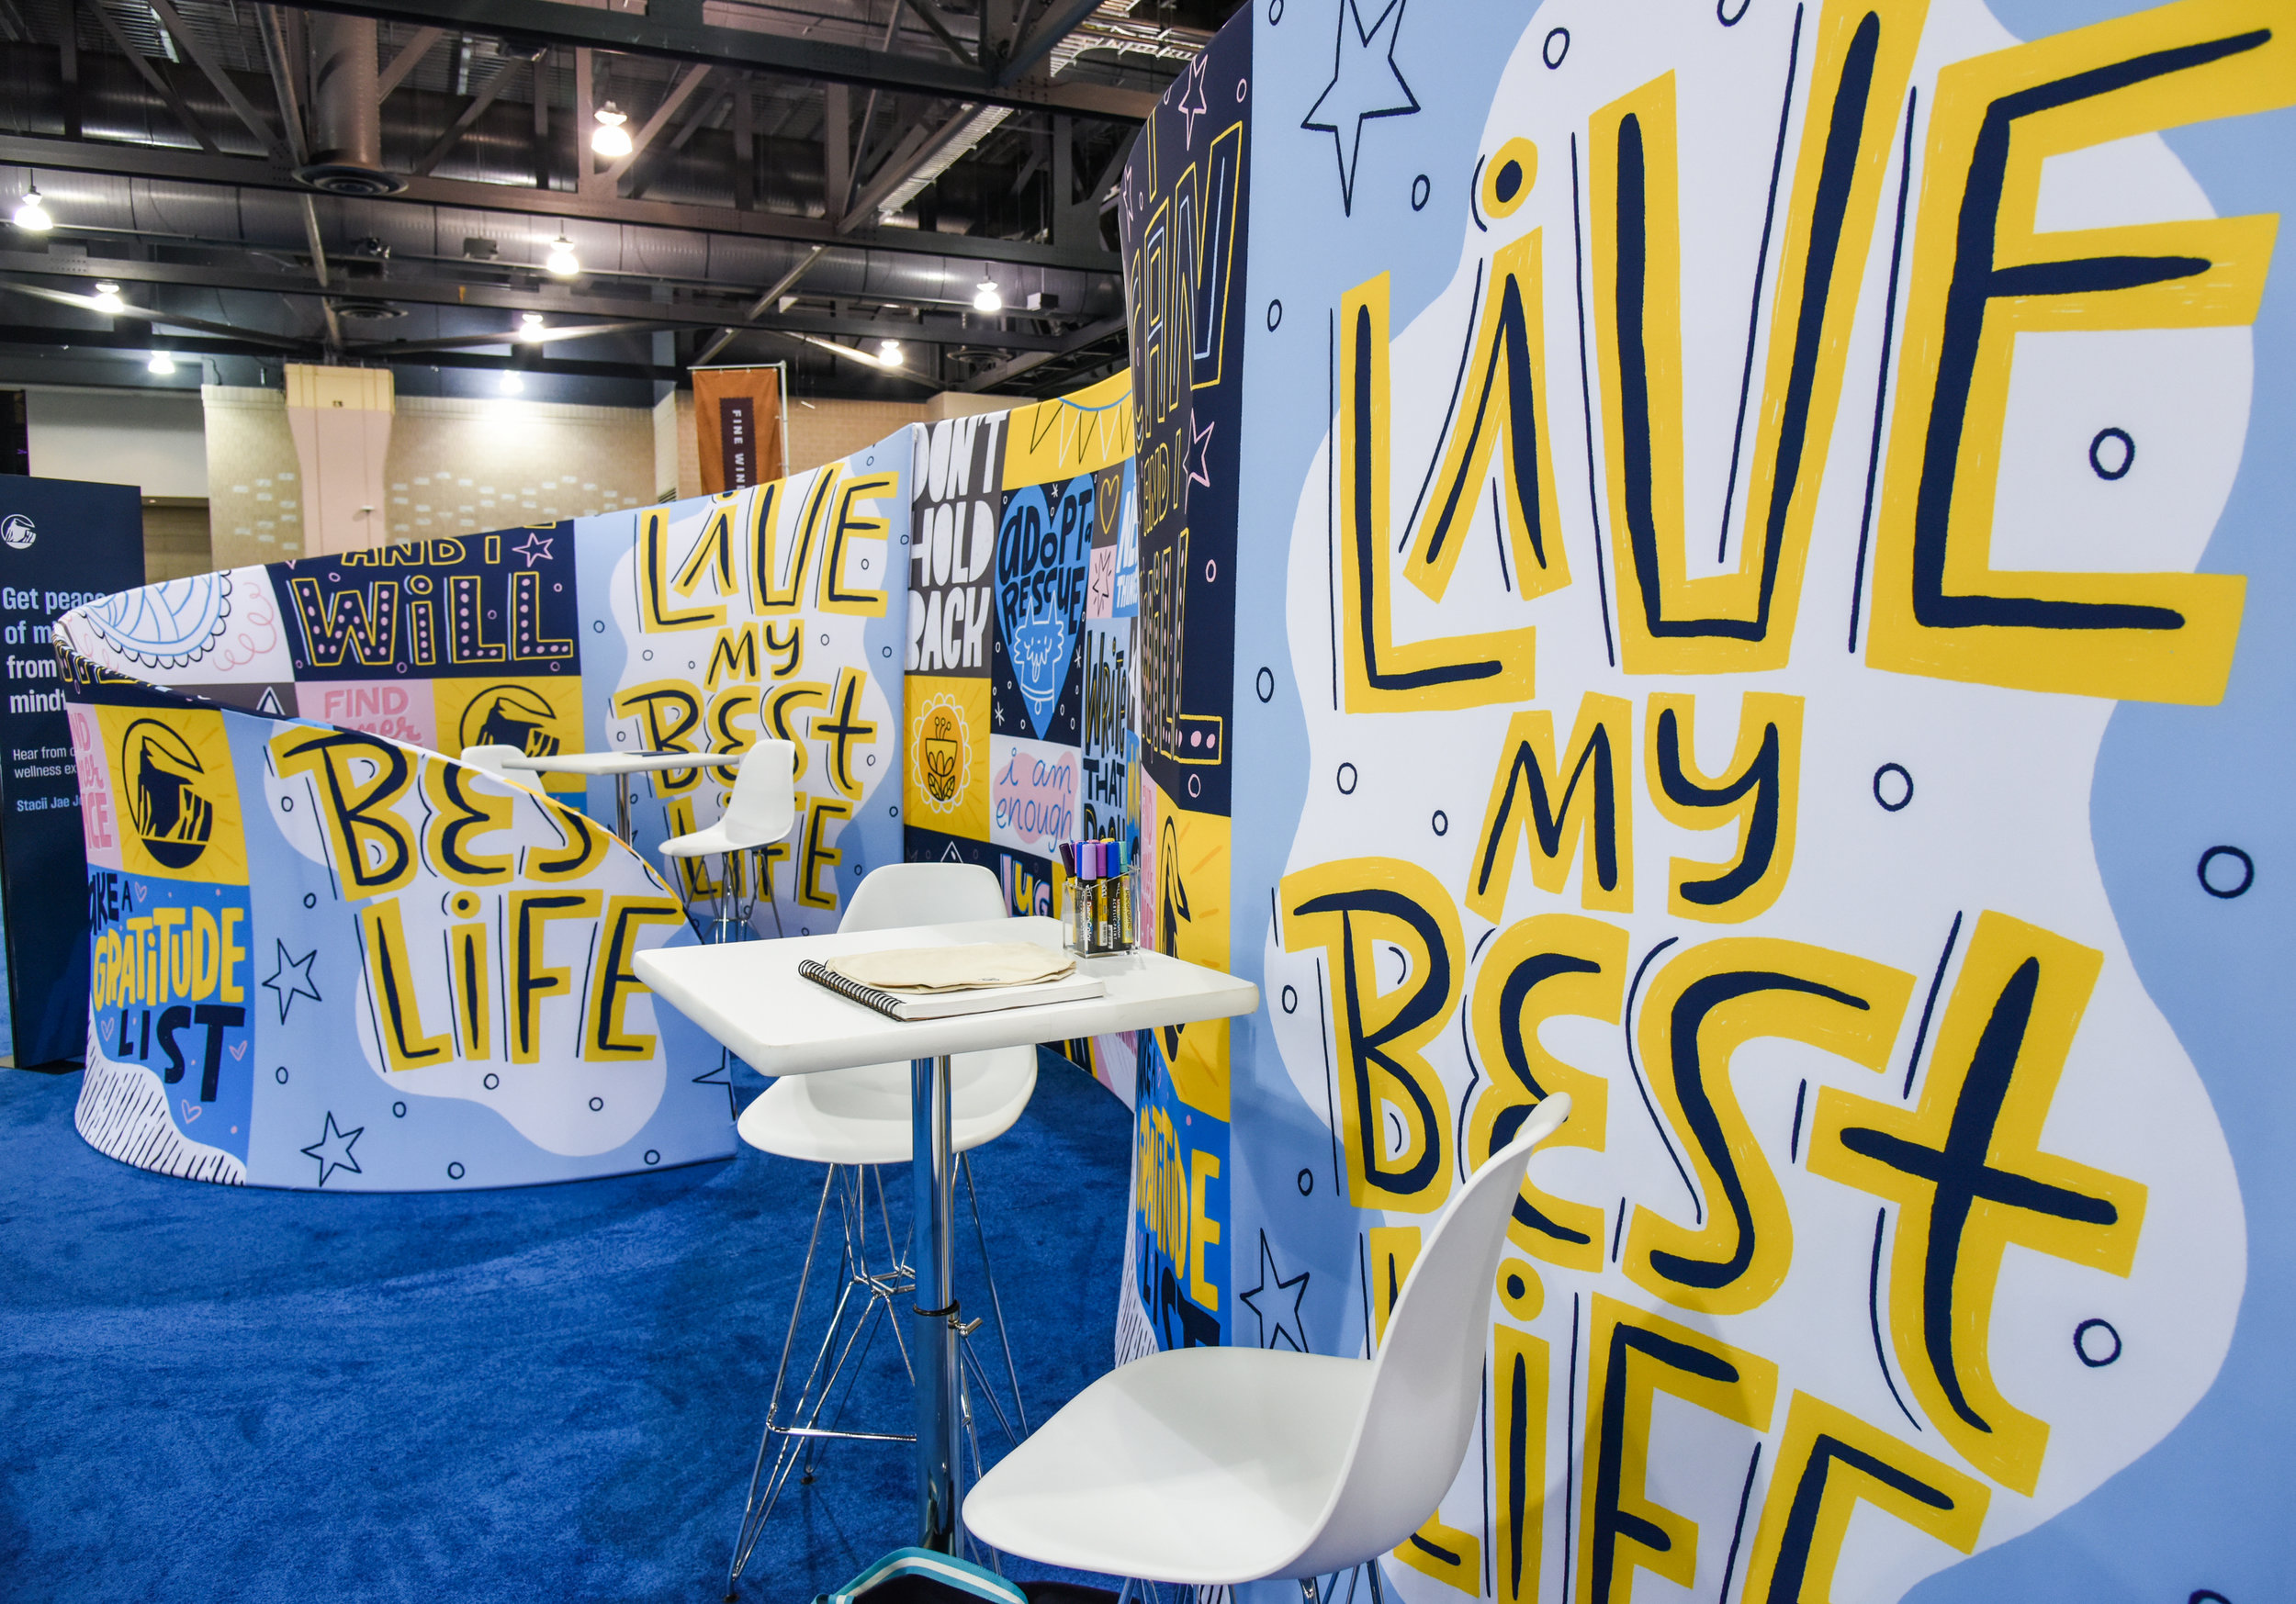 Prudential_WomensConference_IMGLive-65.jpg